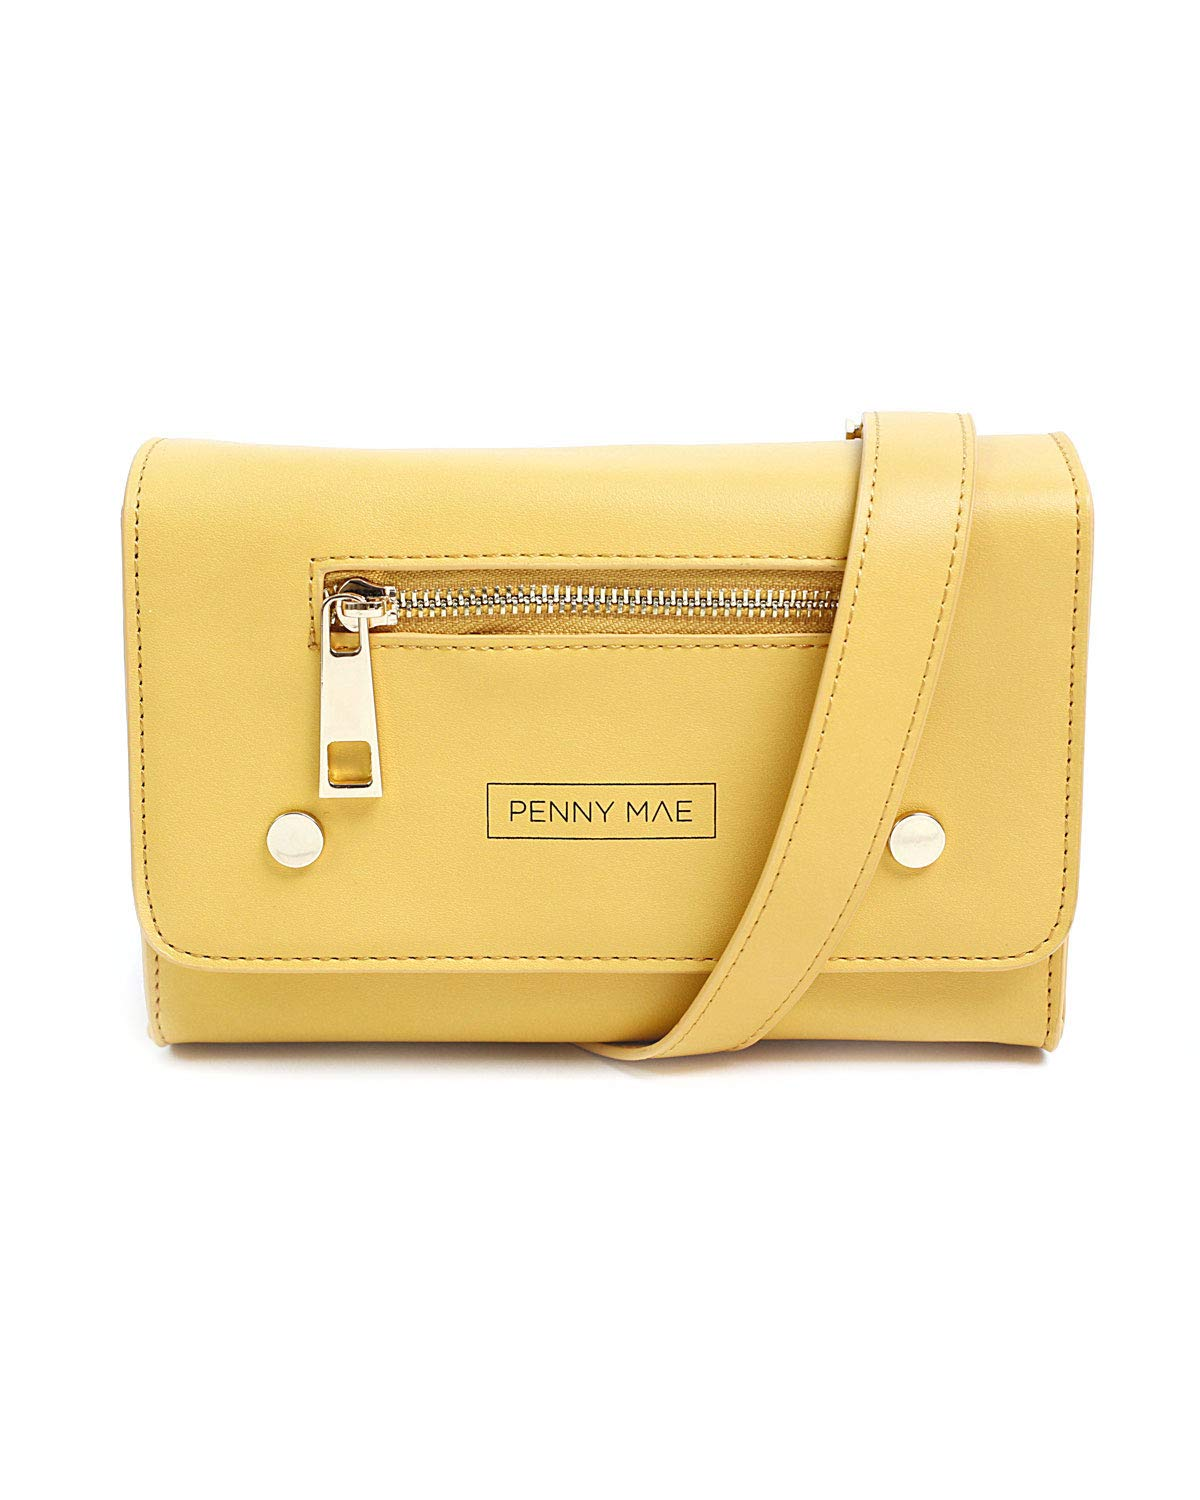 Sandy Brown Cute Trendy Womens All Purpose Travel Bag Penny Mae Rory Leather Fanny Pack Waist Bag